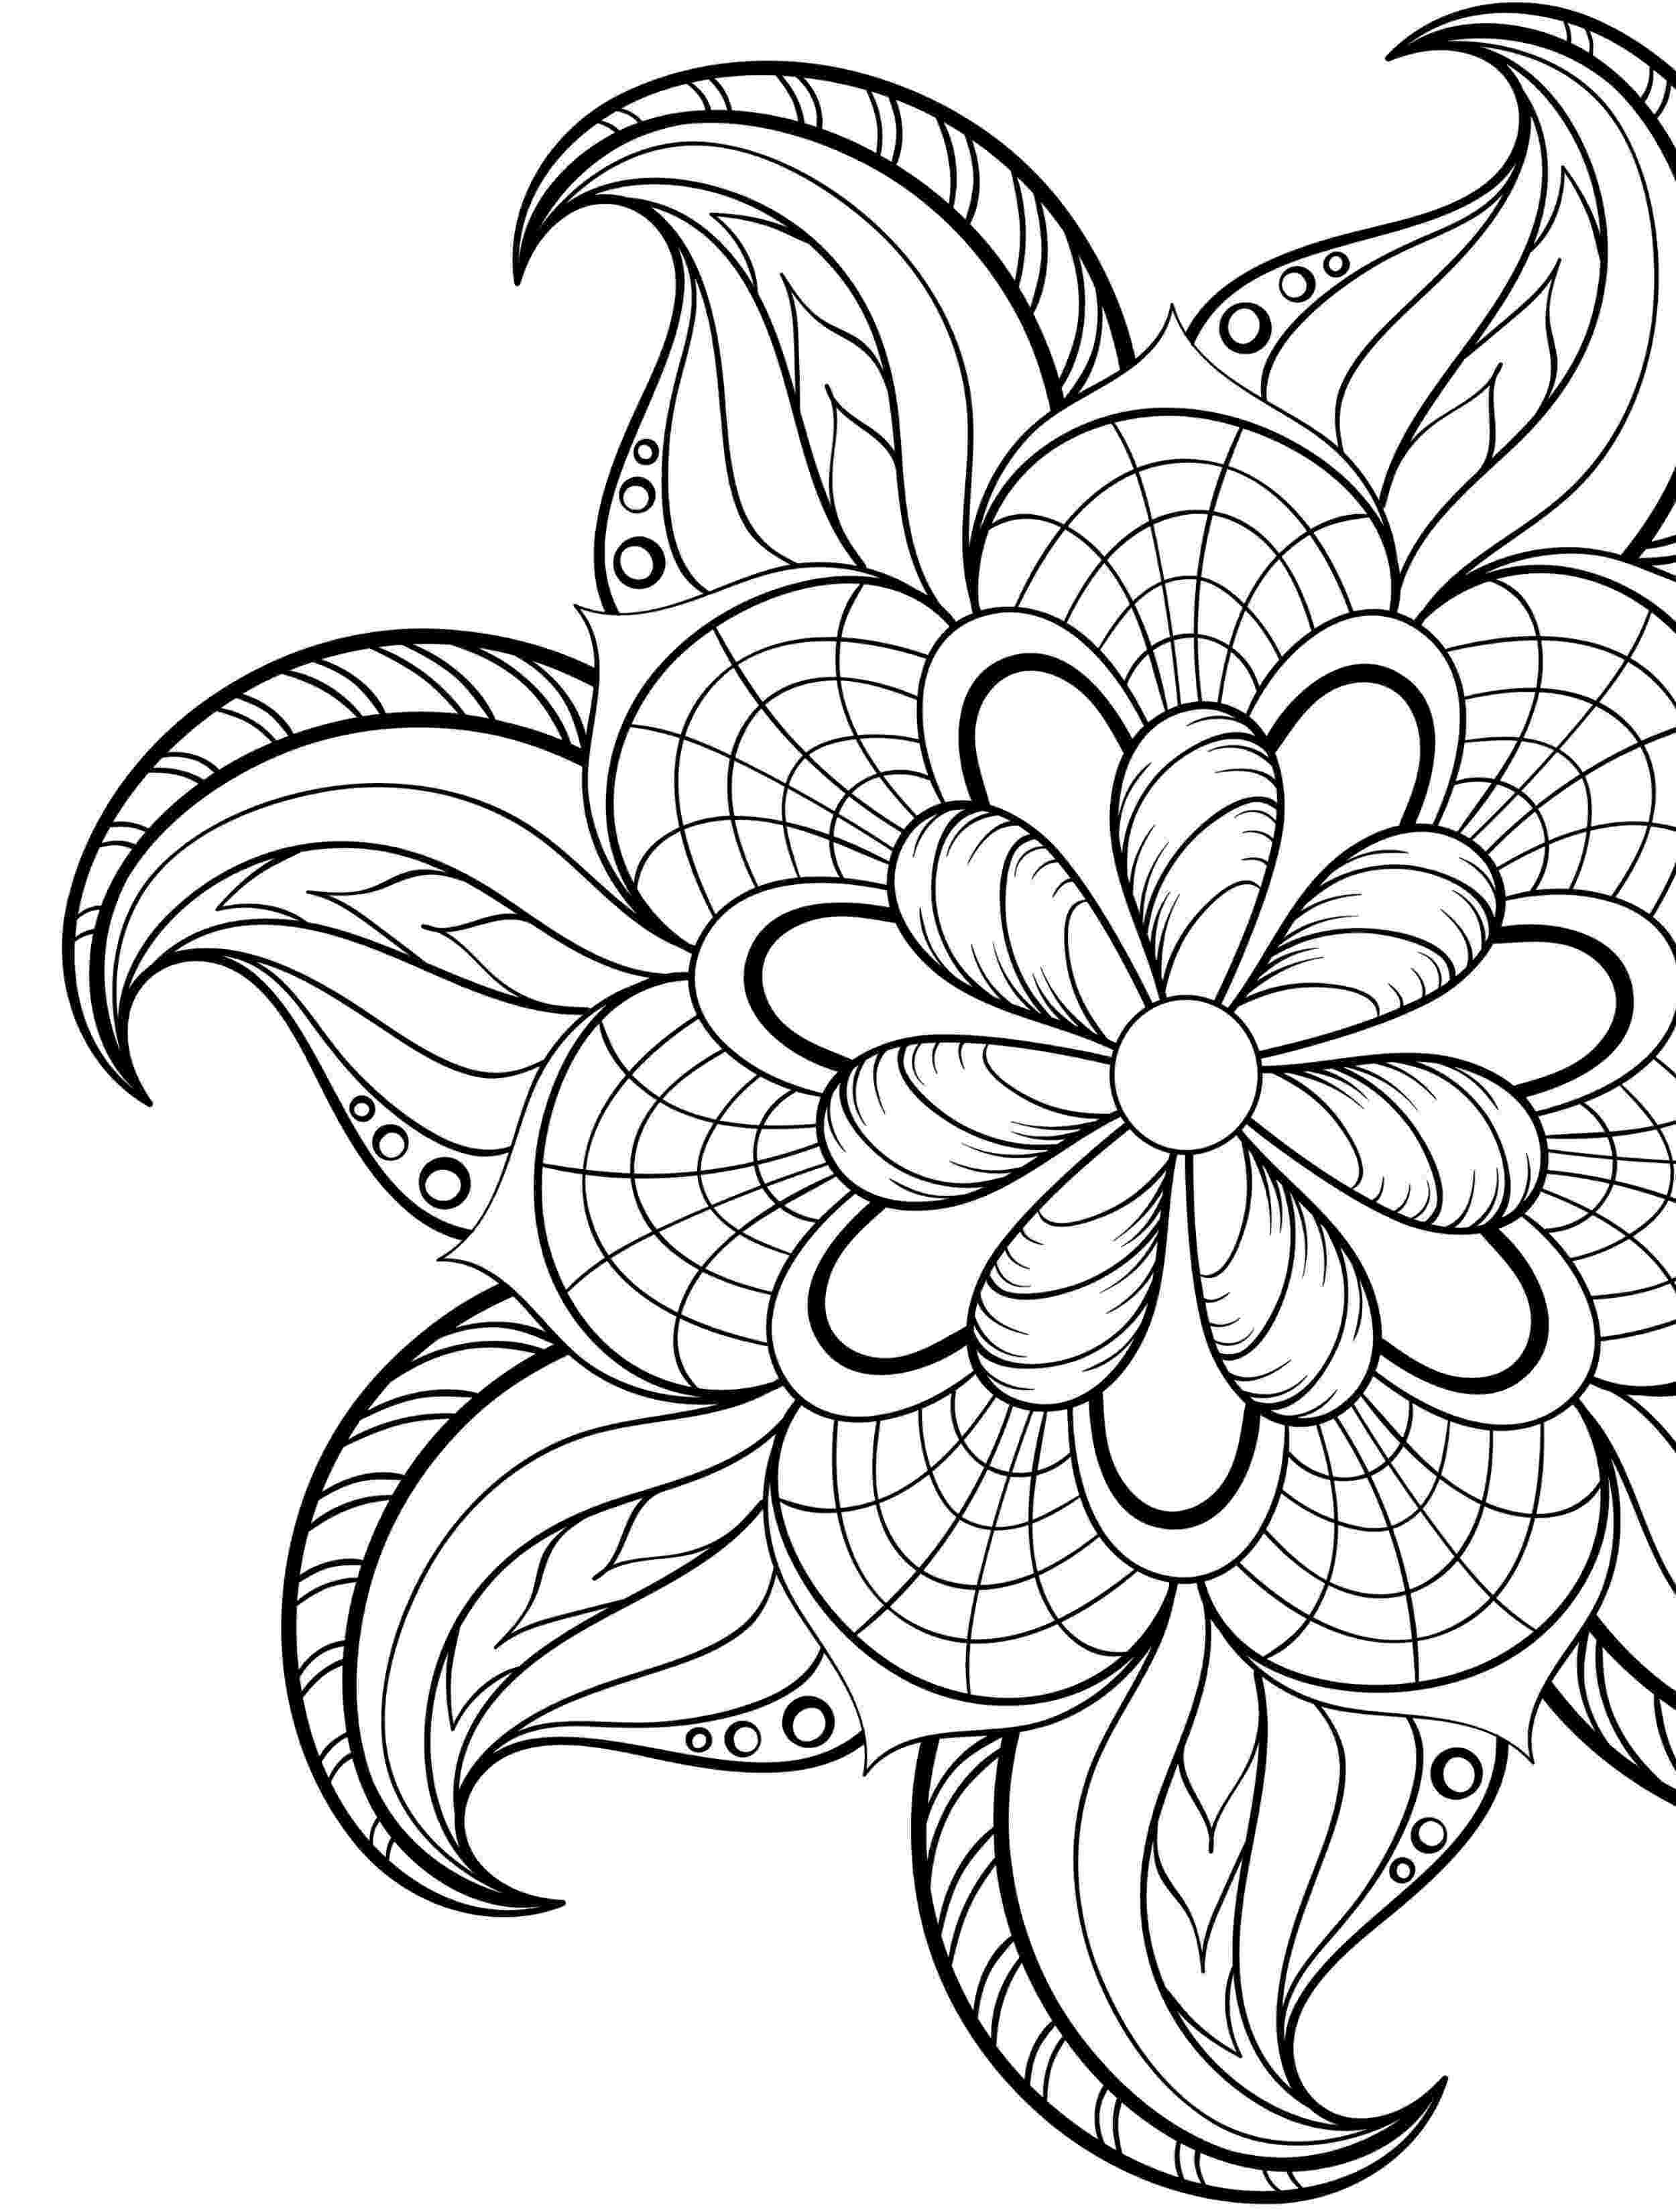 mandala coloring pages for adults free these printable abstract coloring pages relieve stress and free adults coloring pages mandala for